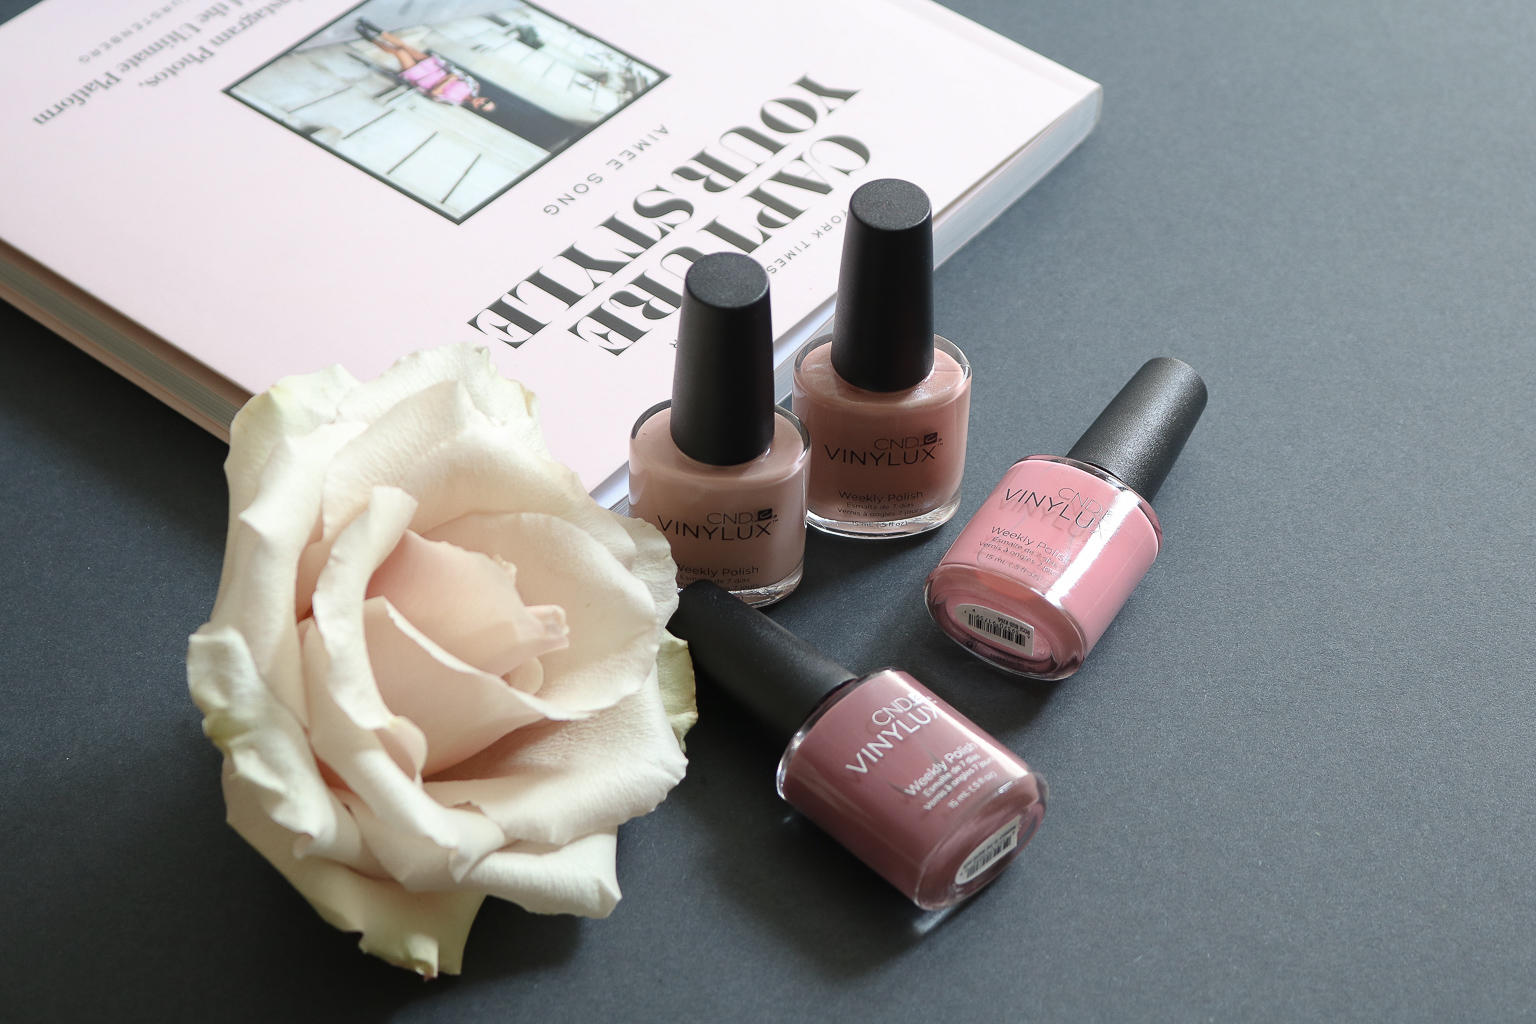 CND Vinylux Weekly Polish is so shiny and long-lasting, it's my new favourite!